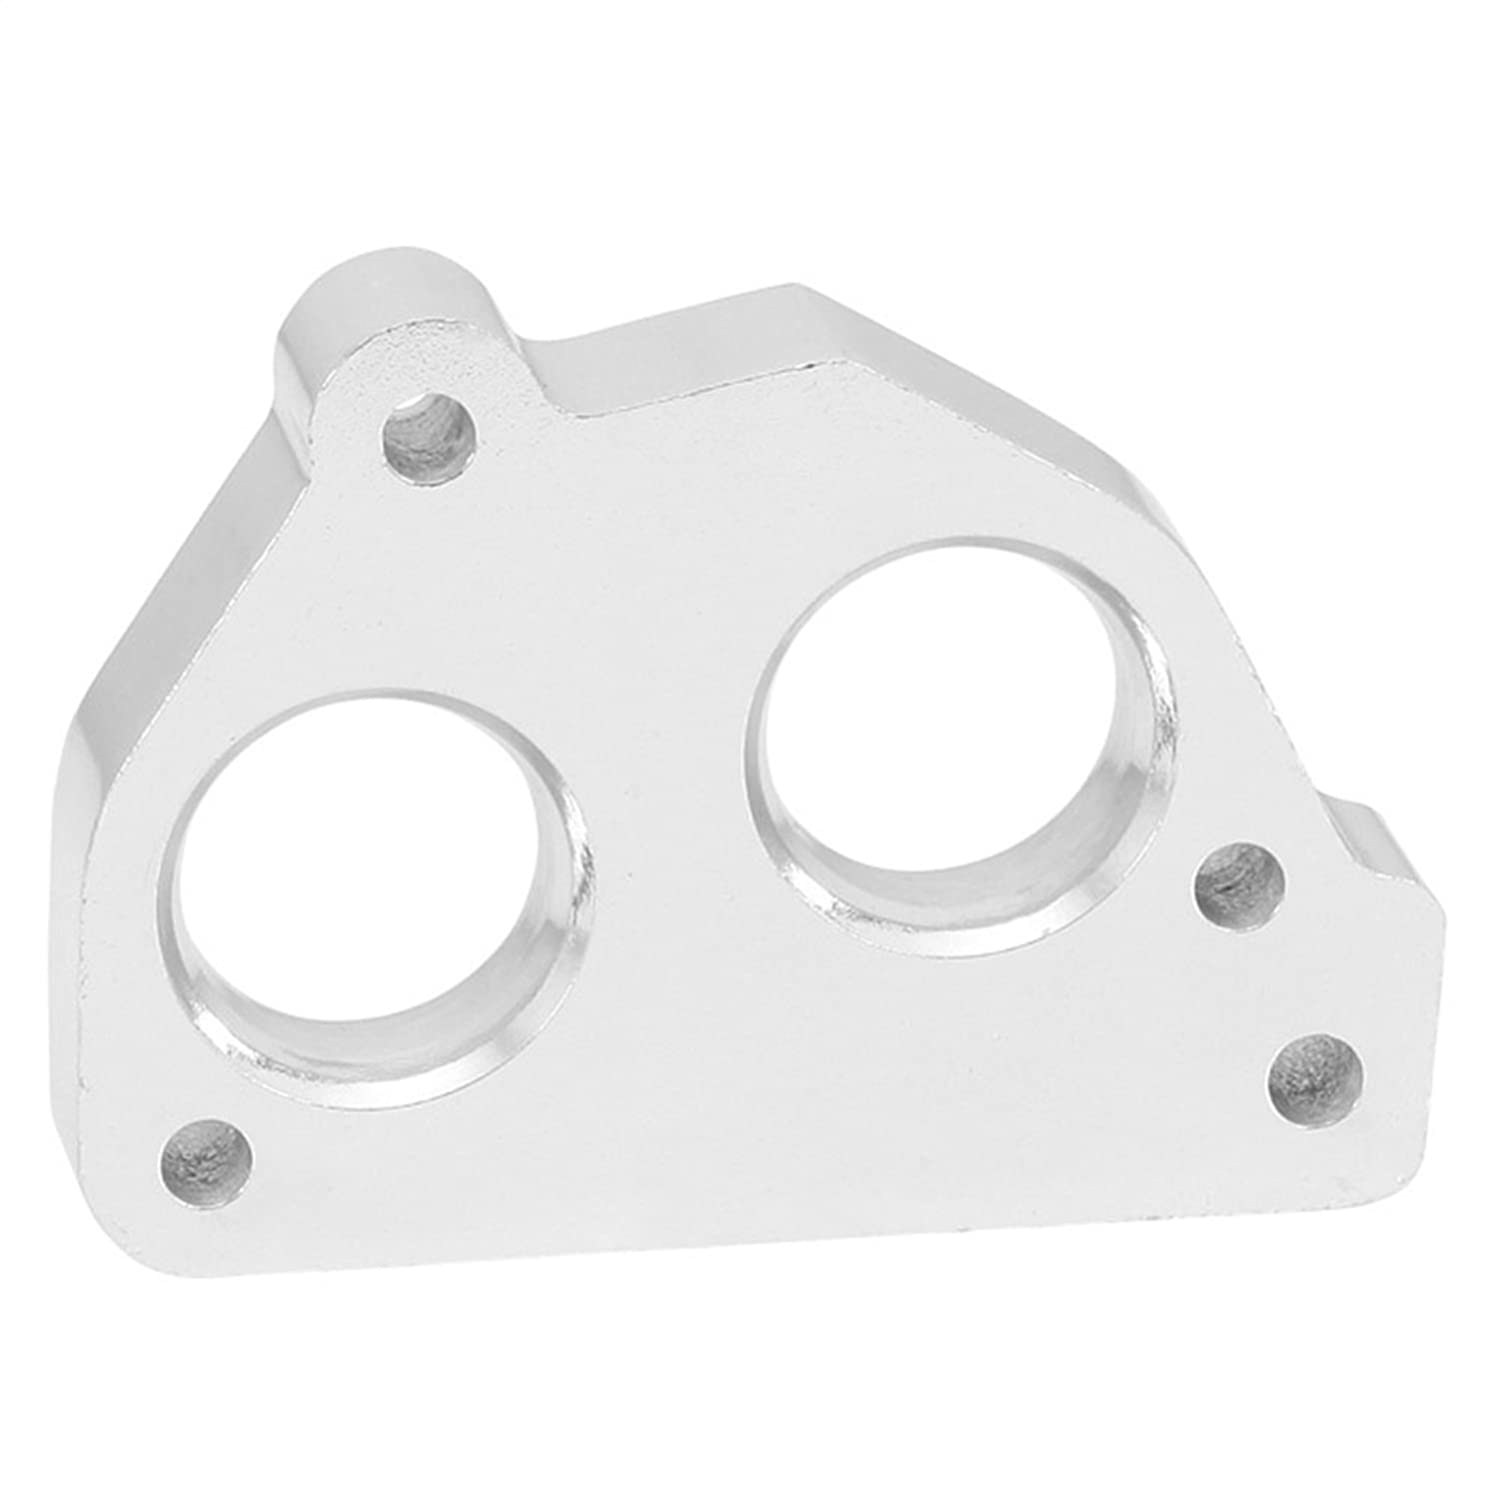 Spectre Performance 11252 Throttle Body Injection Spacer